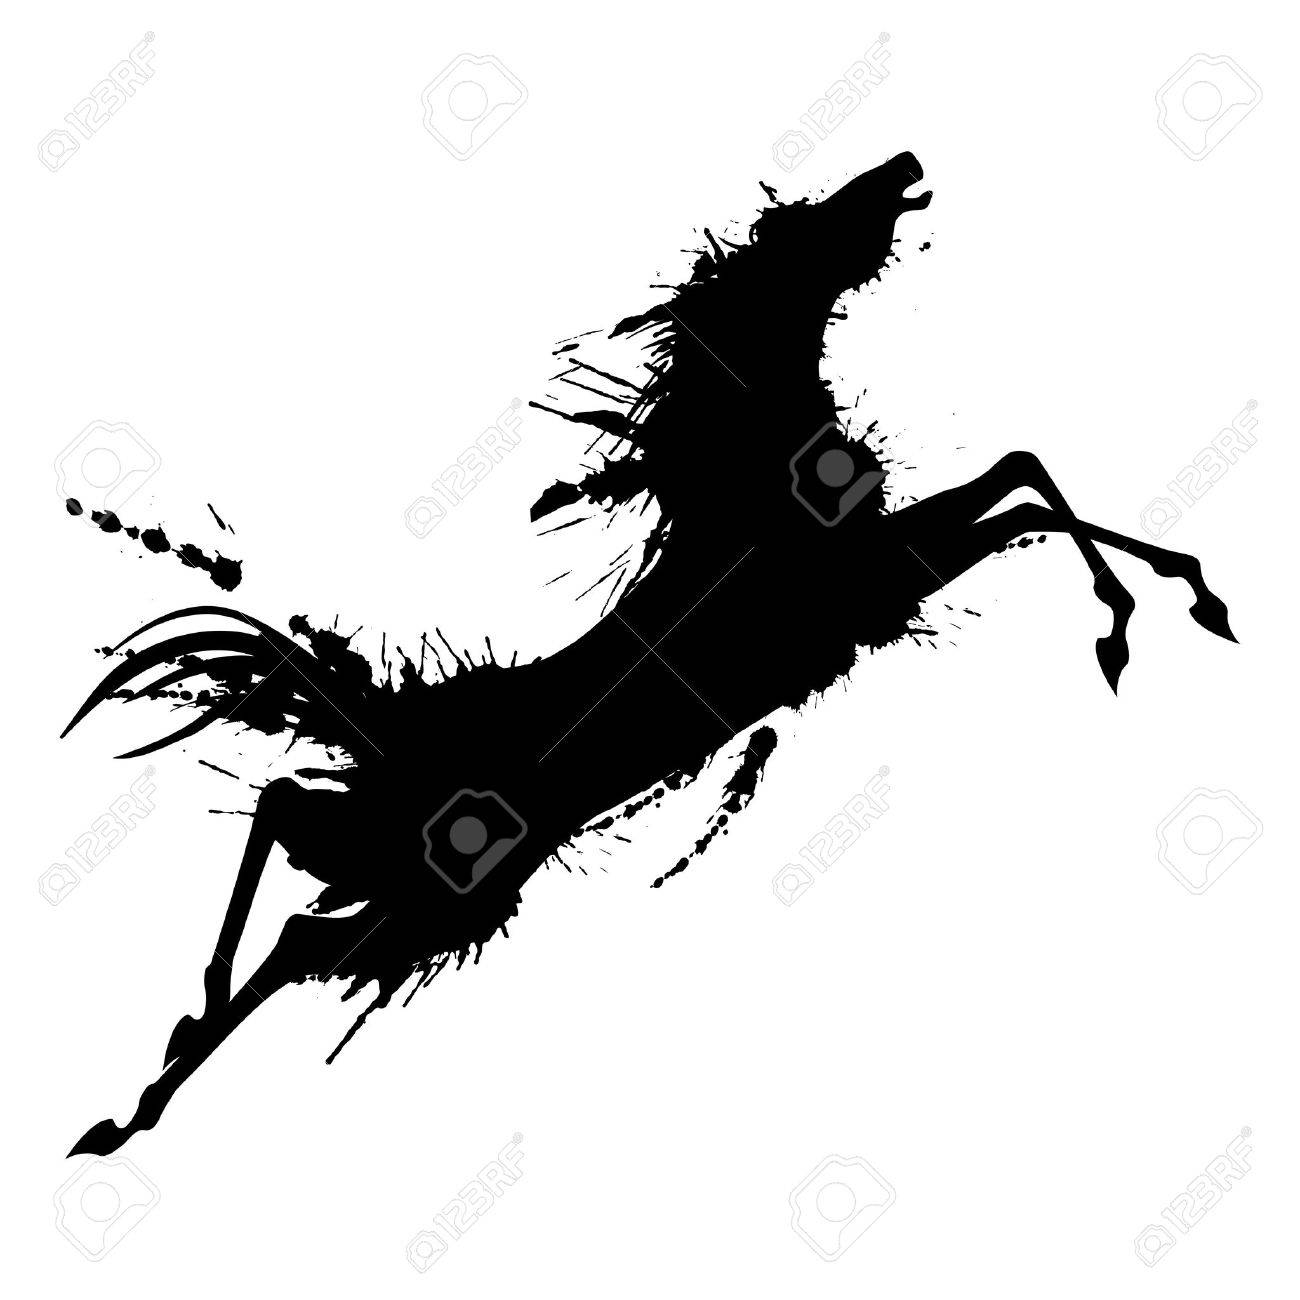 Grunge jumping horse silhouette - 21873502